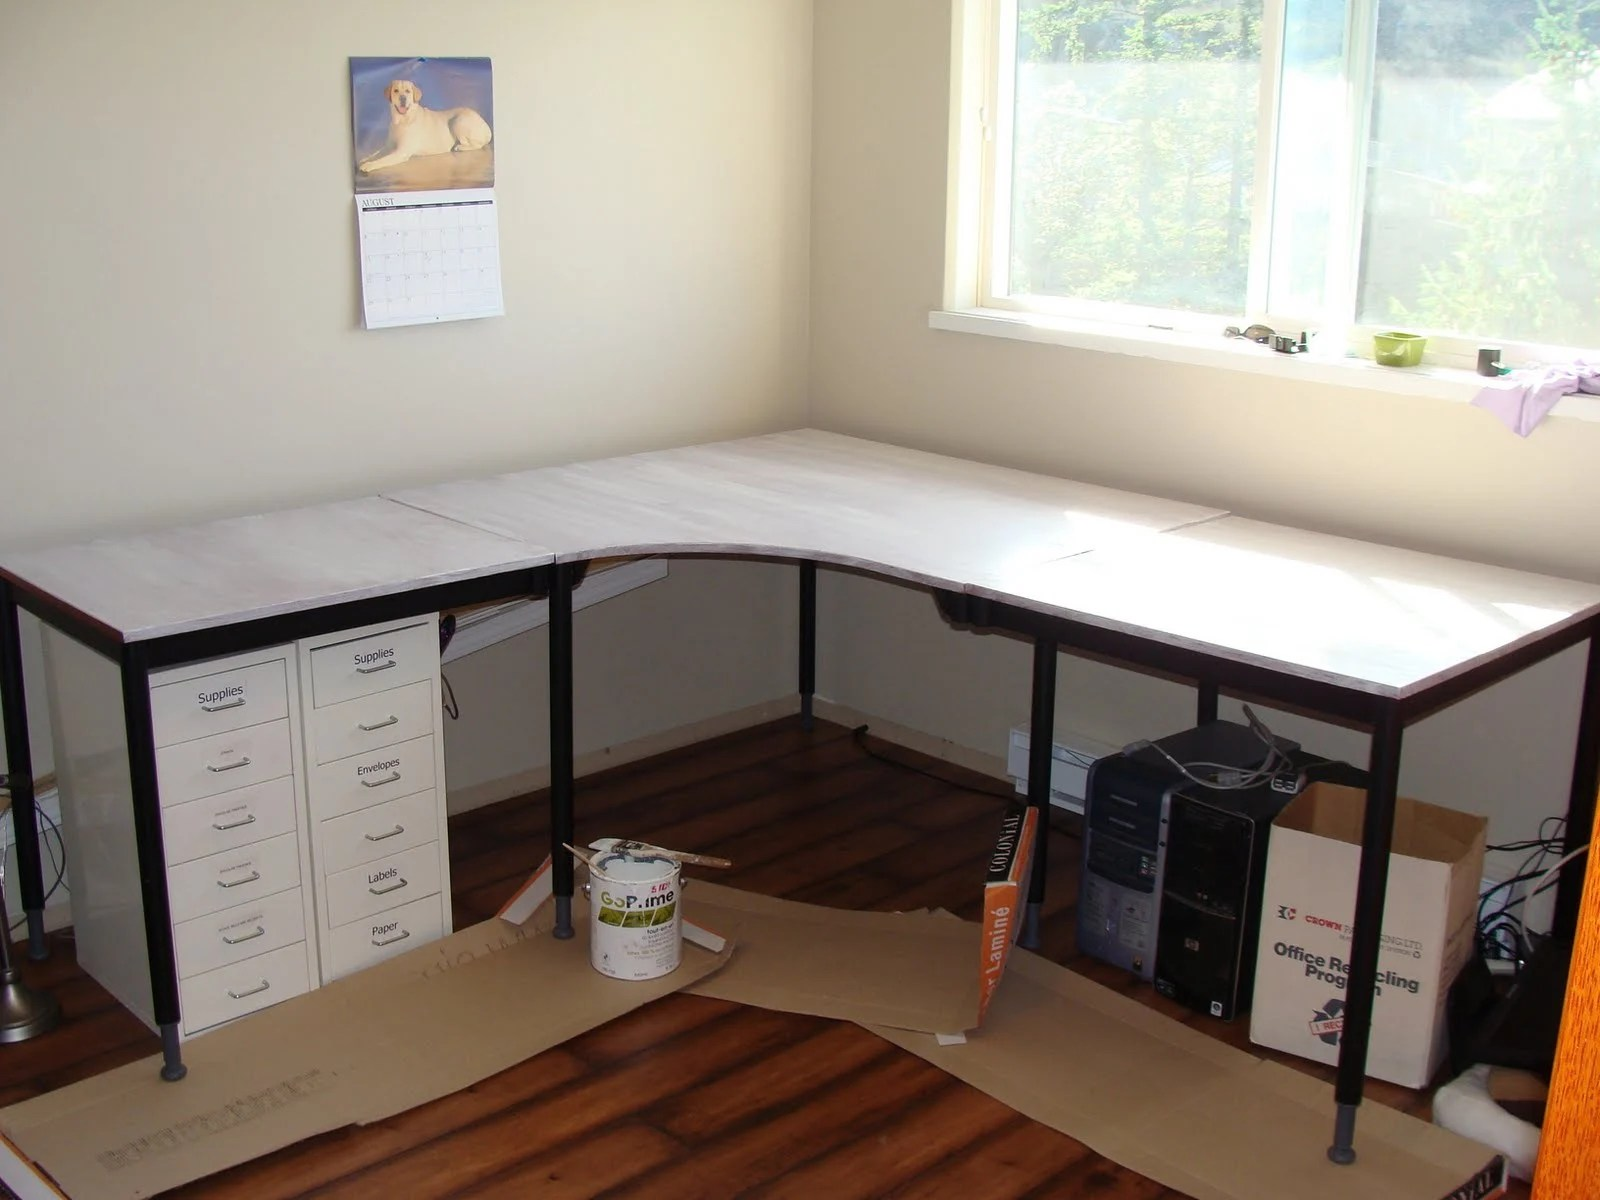 Trend  the back corner with some braces I fashioned from metal plates and banister inserts from Home Depot It is solid u The Desk Top just rests on the